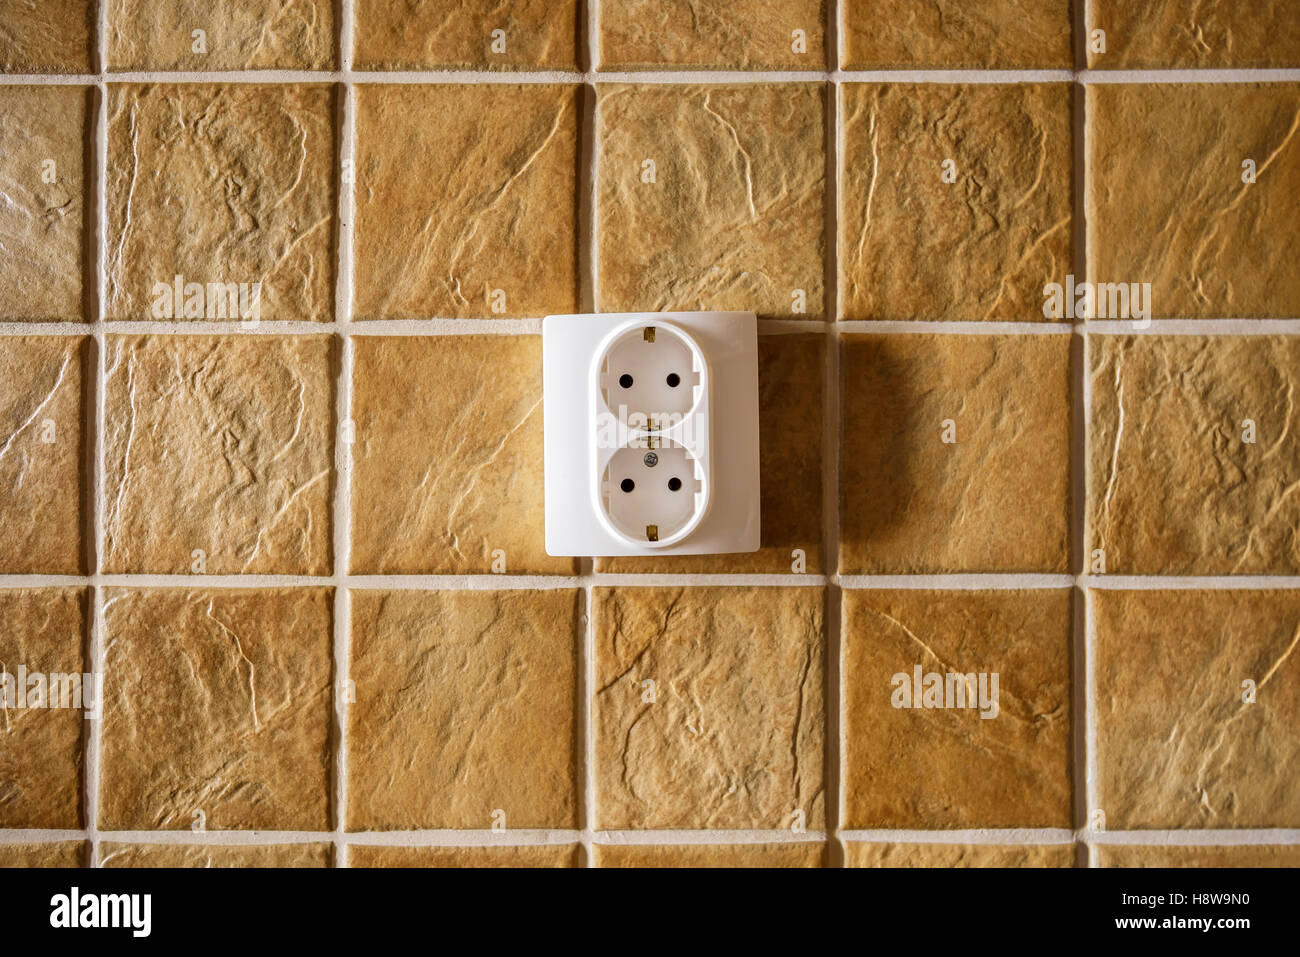 White electric socket on kitchen wall with ceramic tiles pattern texture - Stock Image